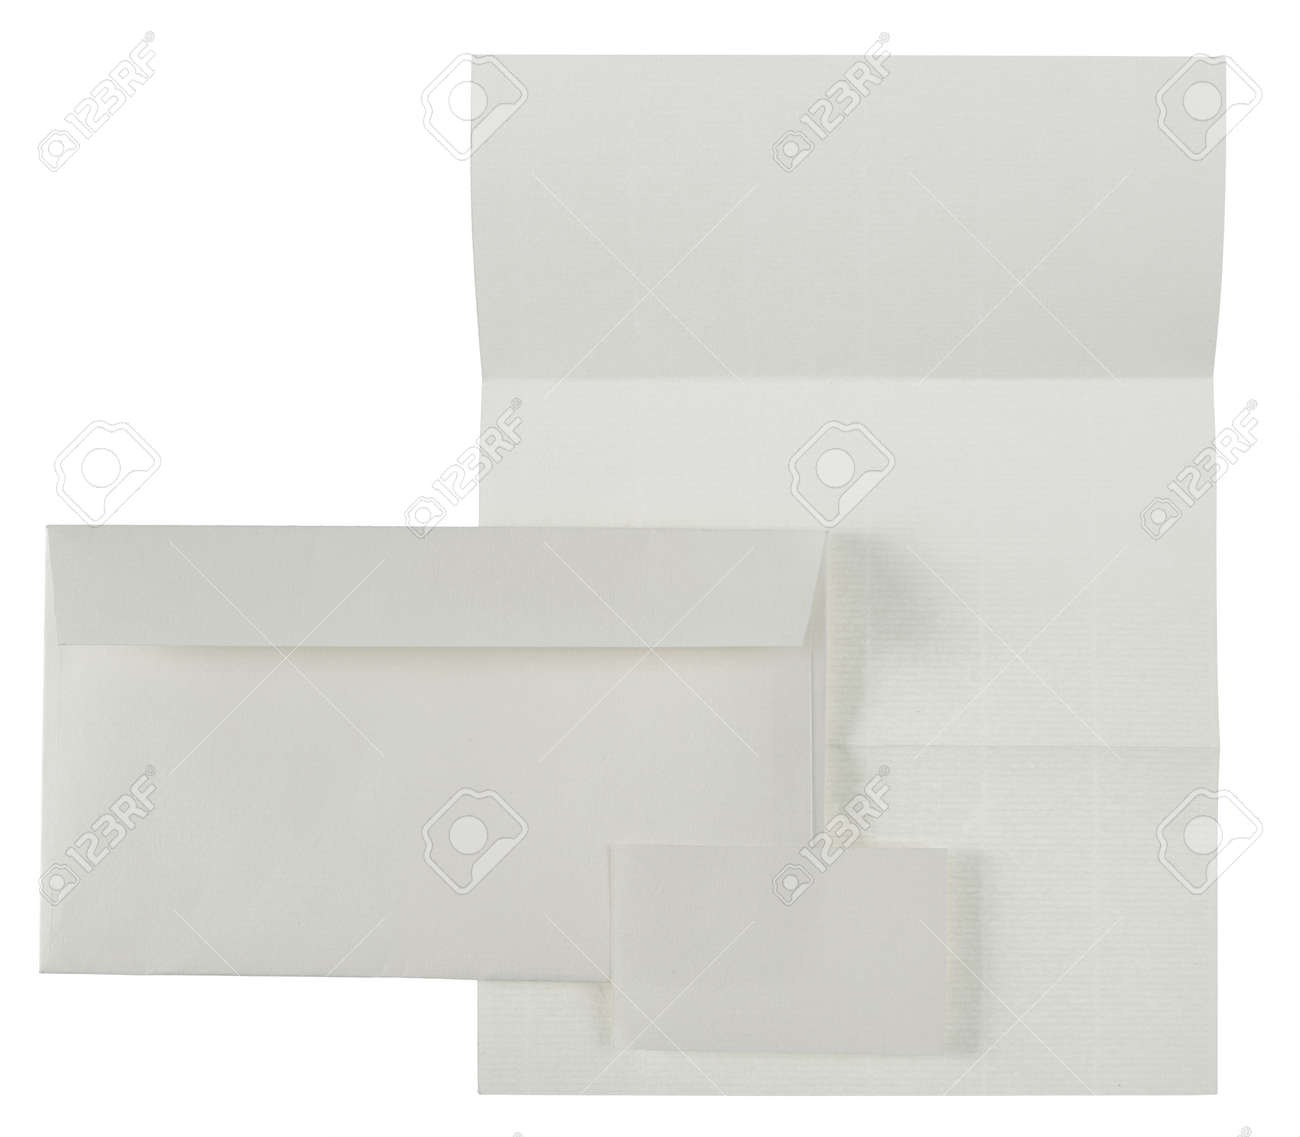 business stationary set. envelope, paper sheet and business card. isolated over white background Standard-Bild - 9469582